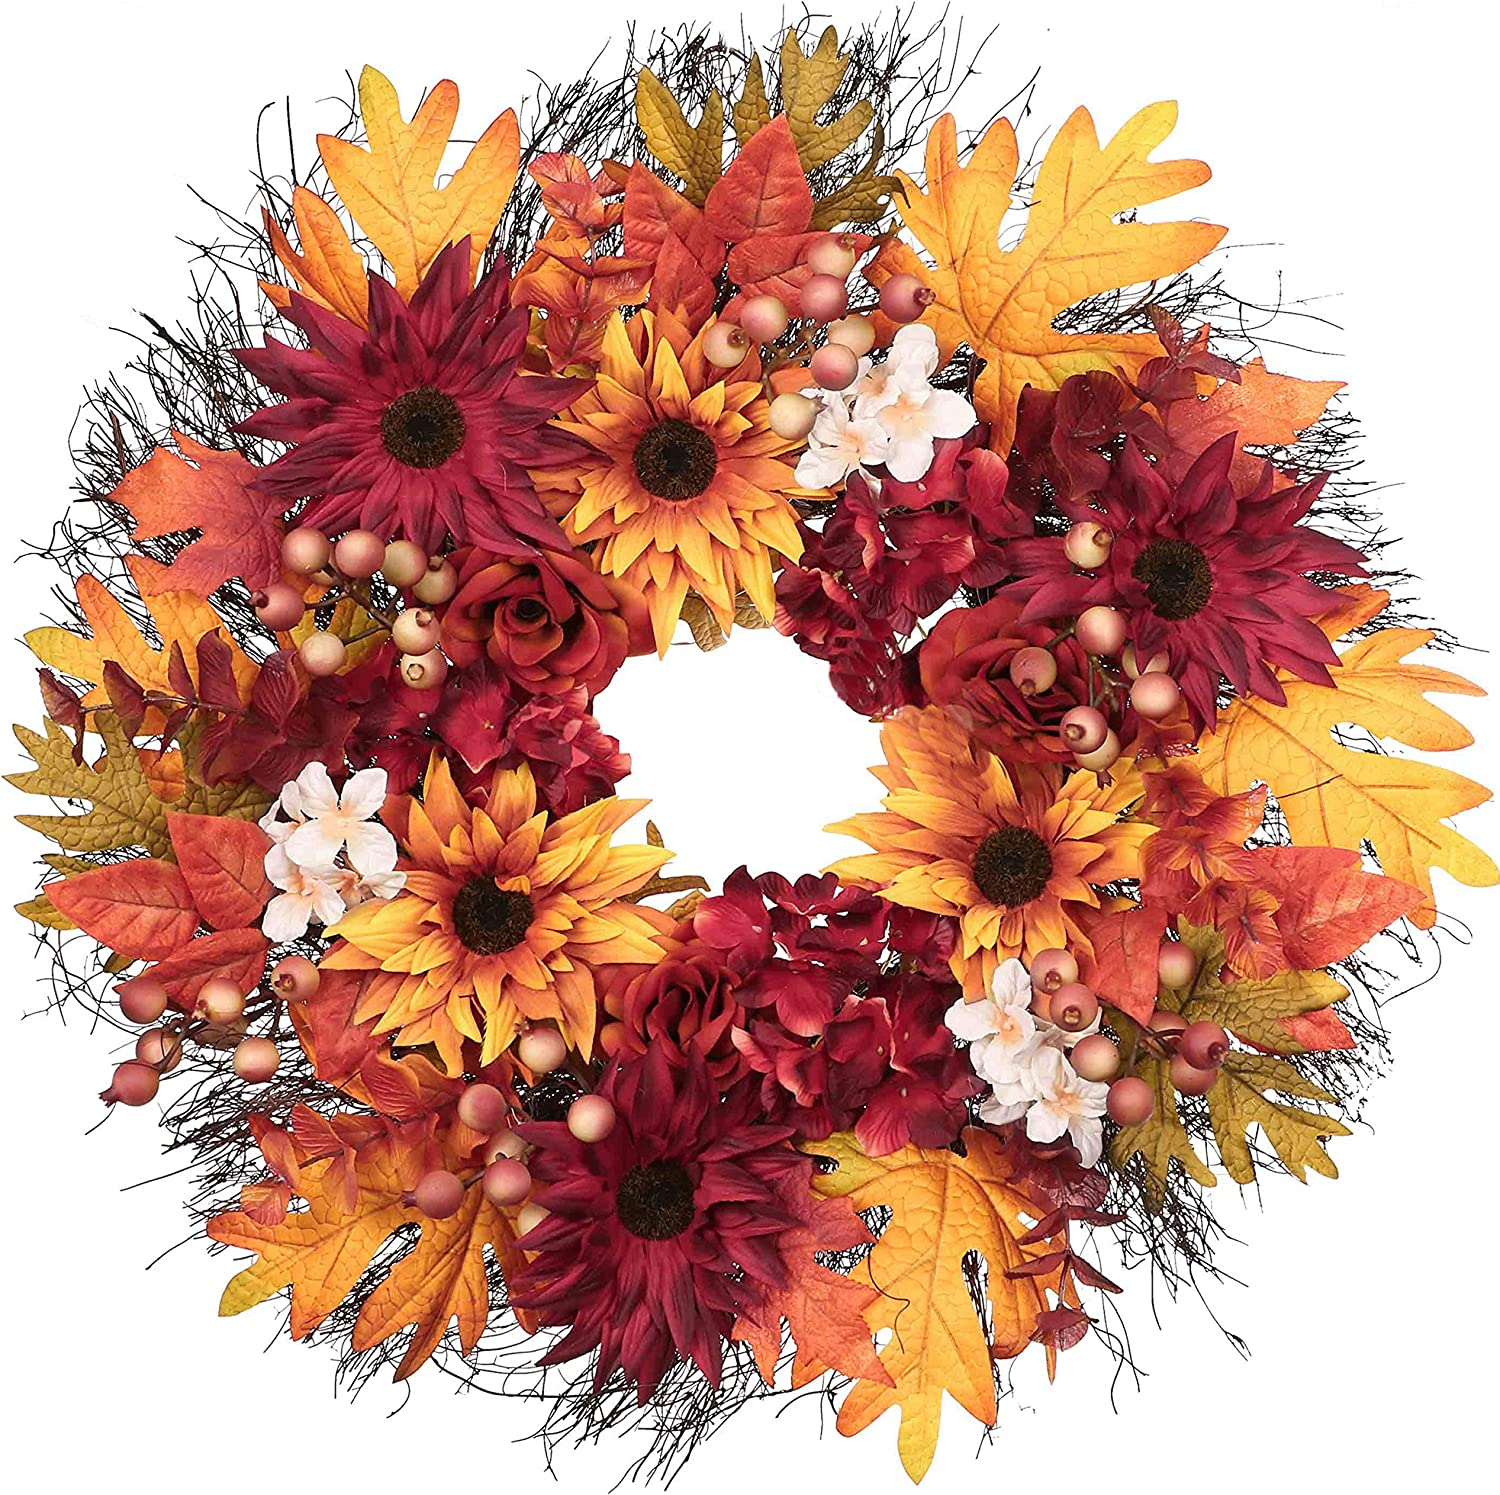 Fall Floral Collection by Valery Madelyn